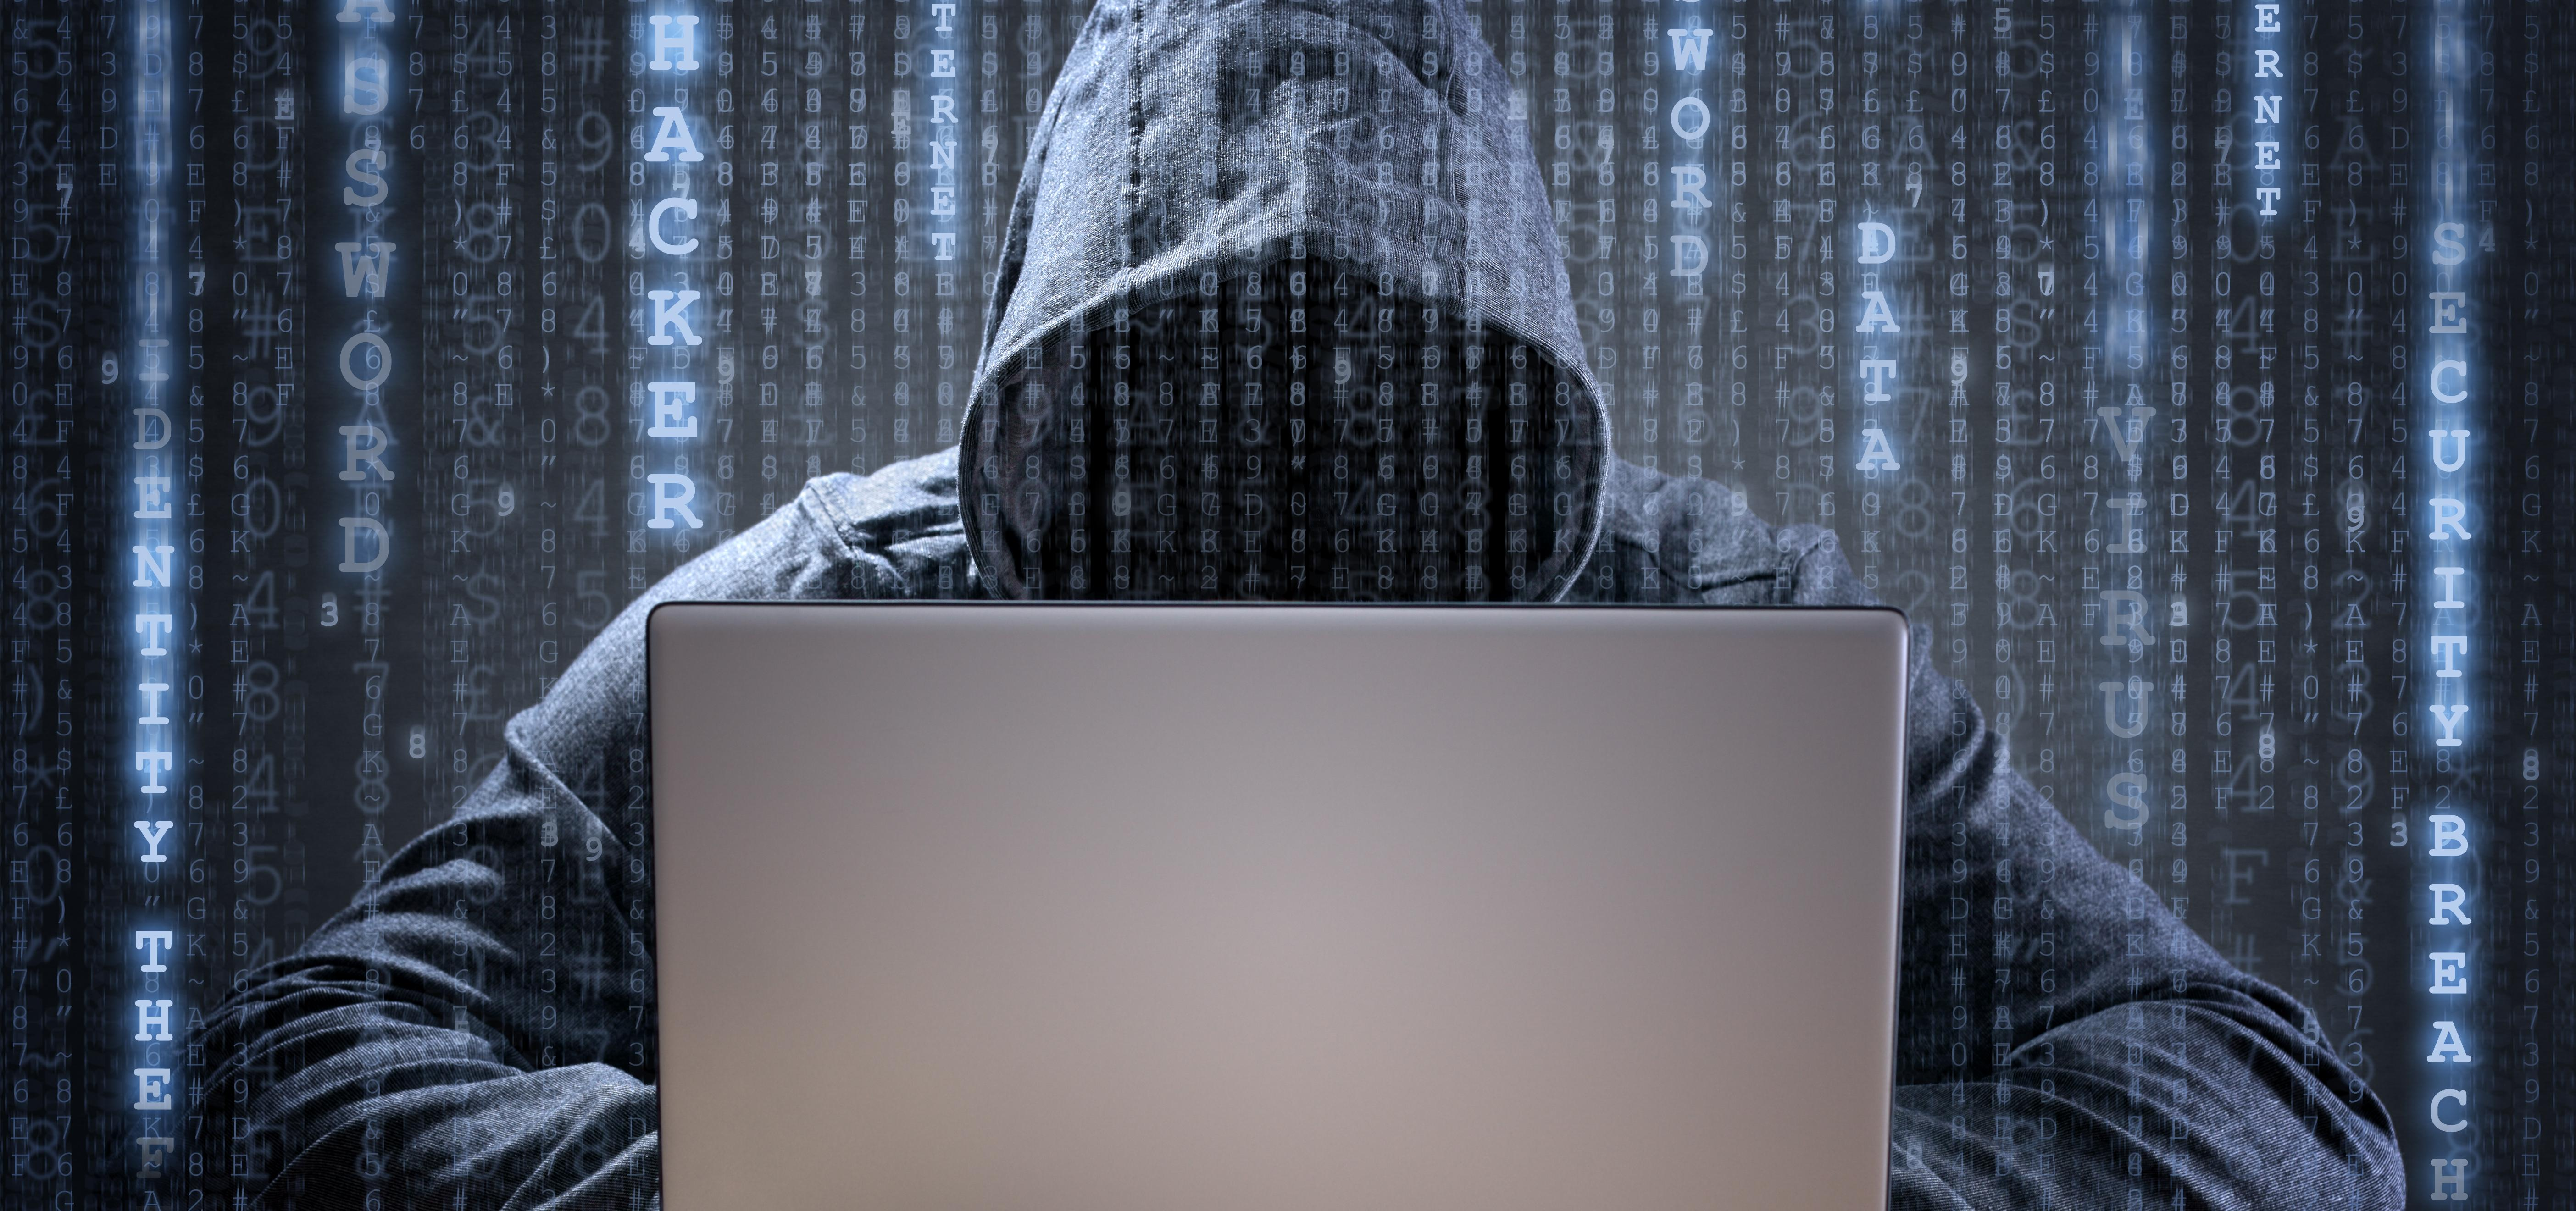 Cybersecurity HD Computer 4k Wallpapers Images Backgrounds